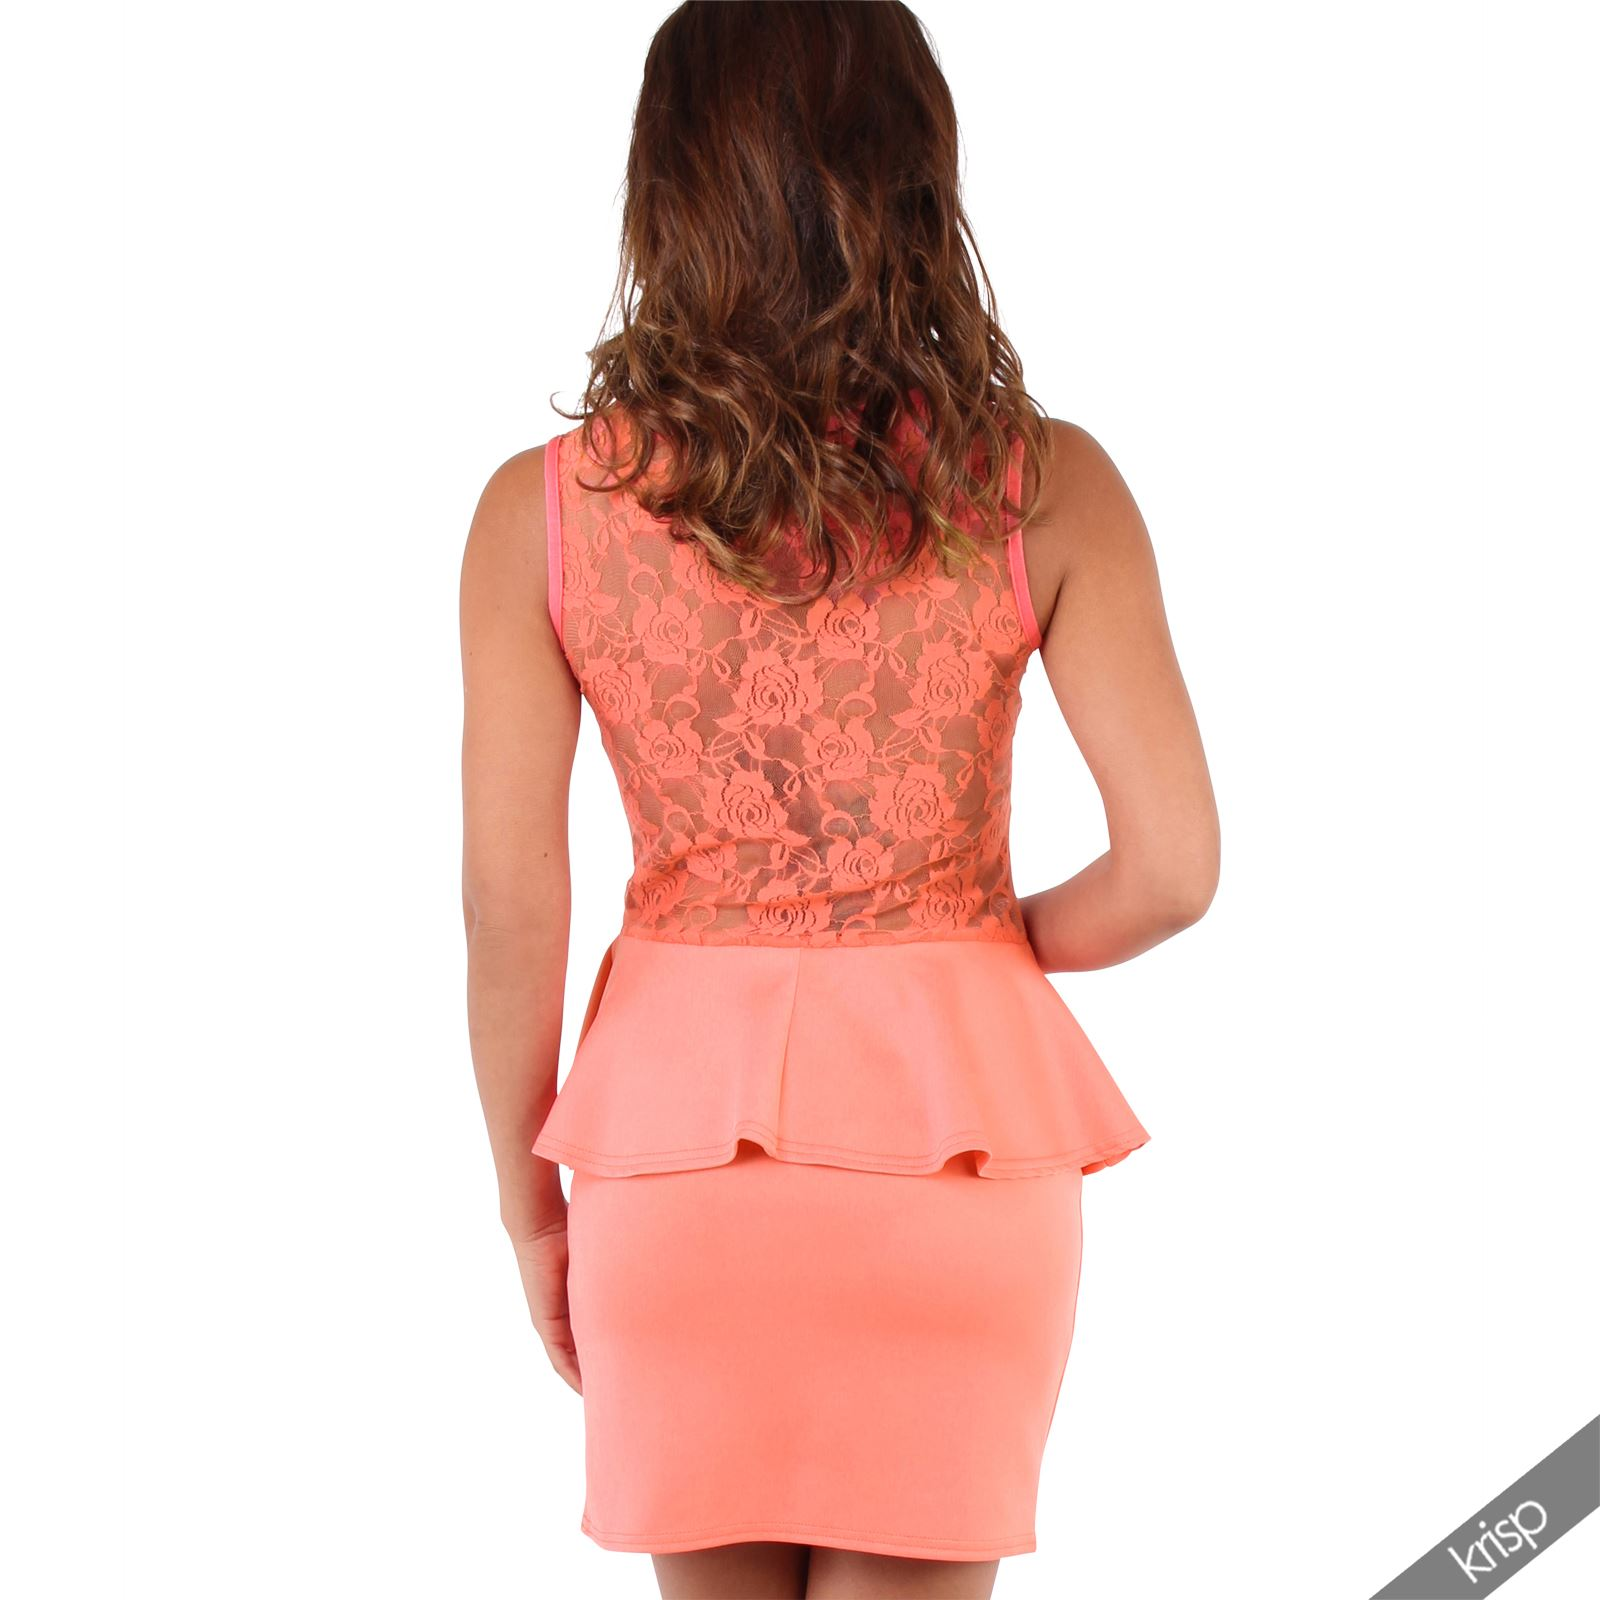 Womens-Ladies-Pencil-Lace-Dress-Mini-Midi-Skirt-Bodycon-Stretch-Frill-Party thumbnail 10